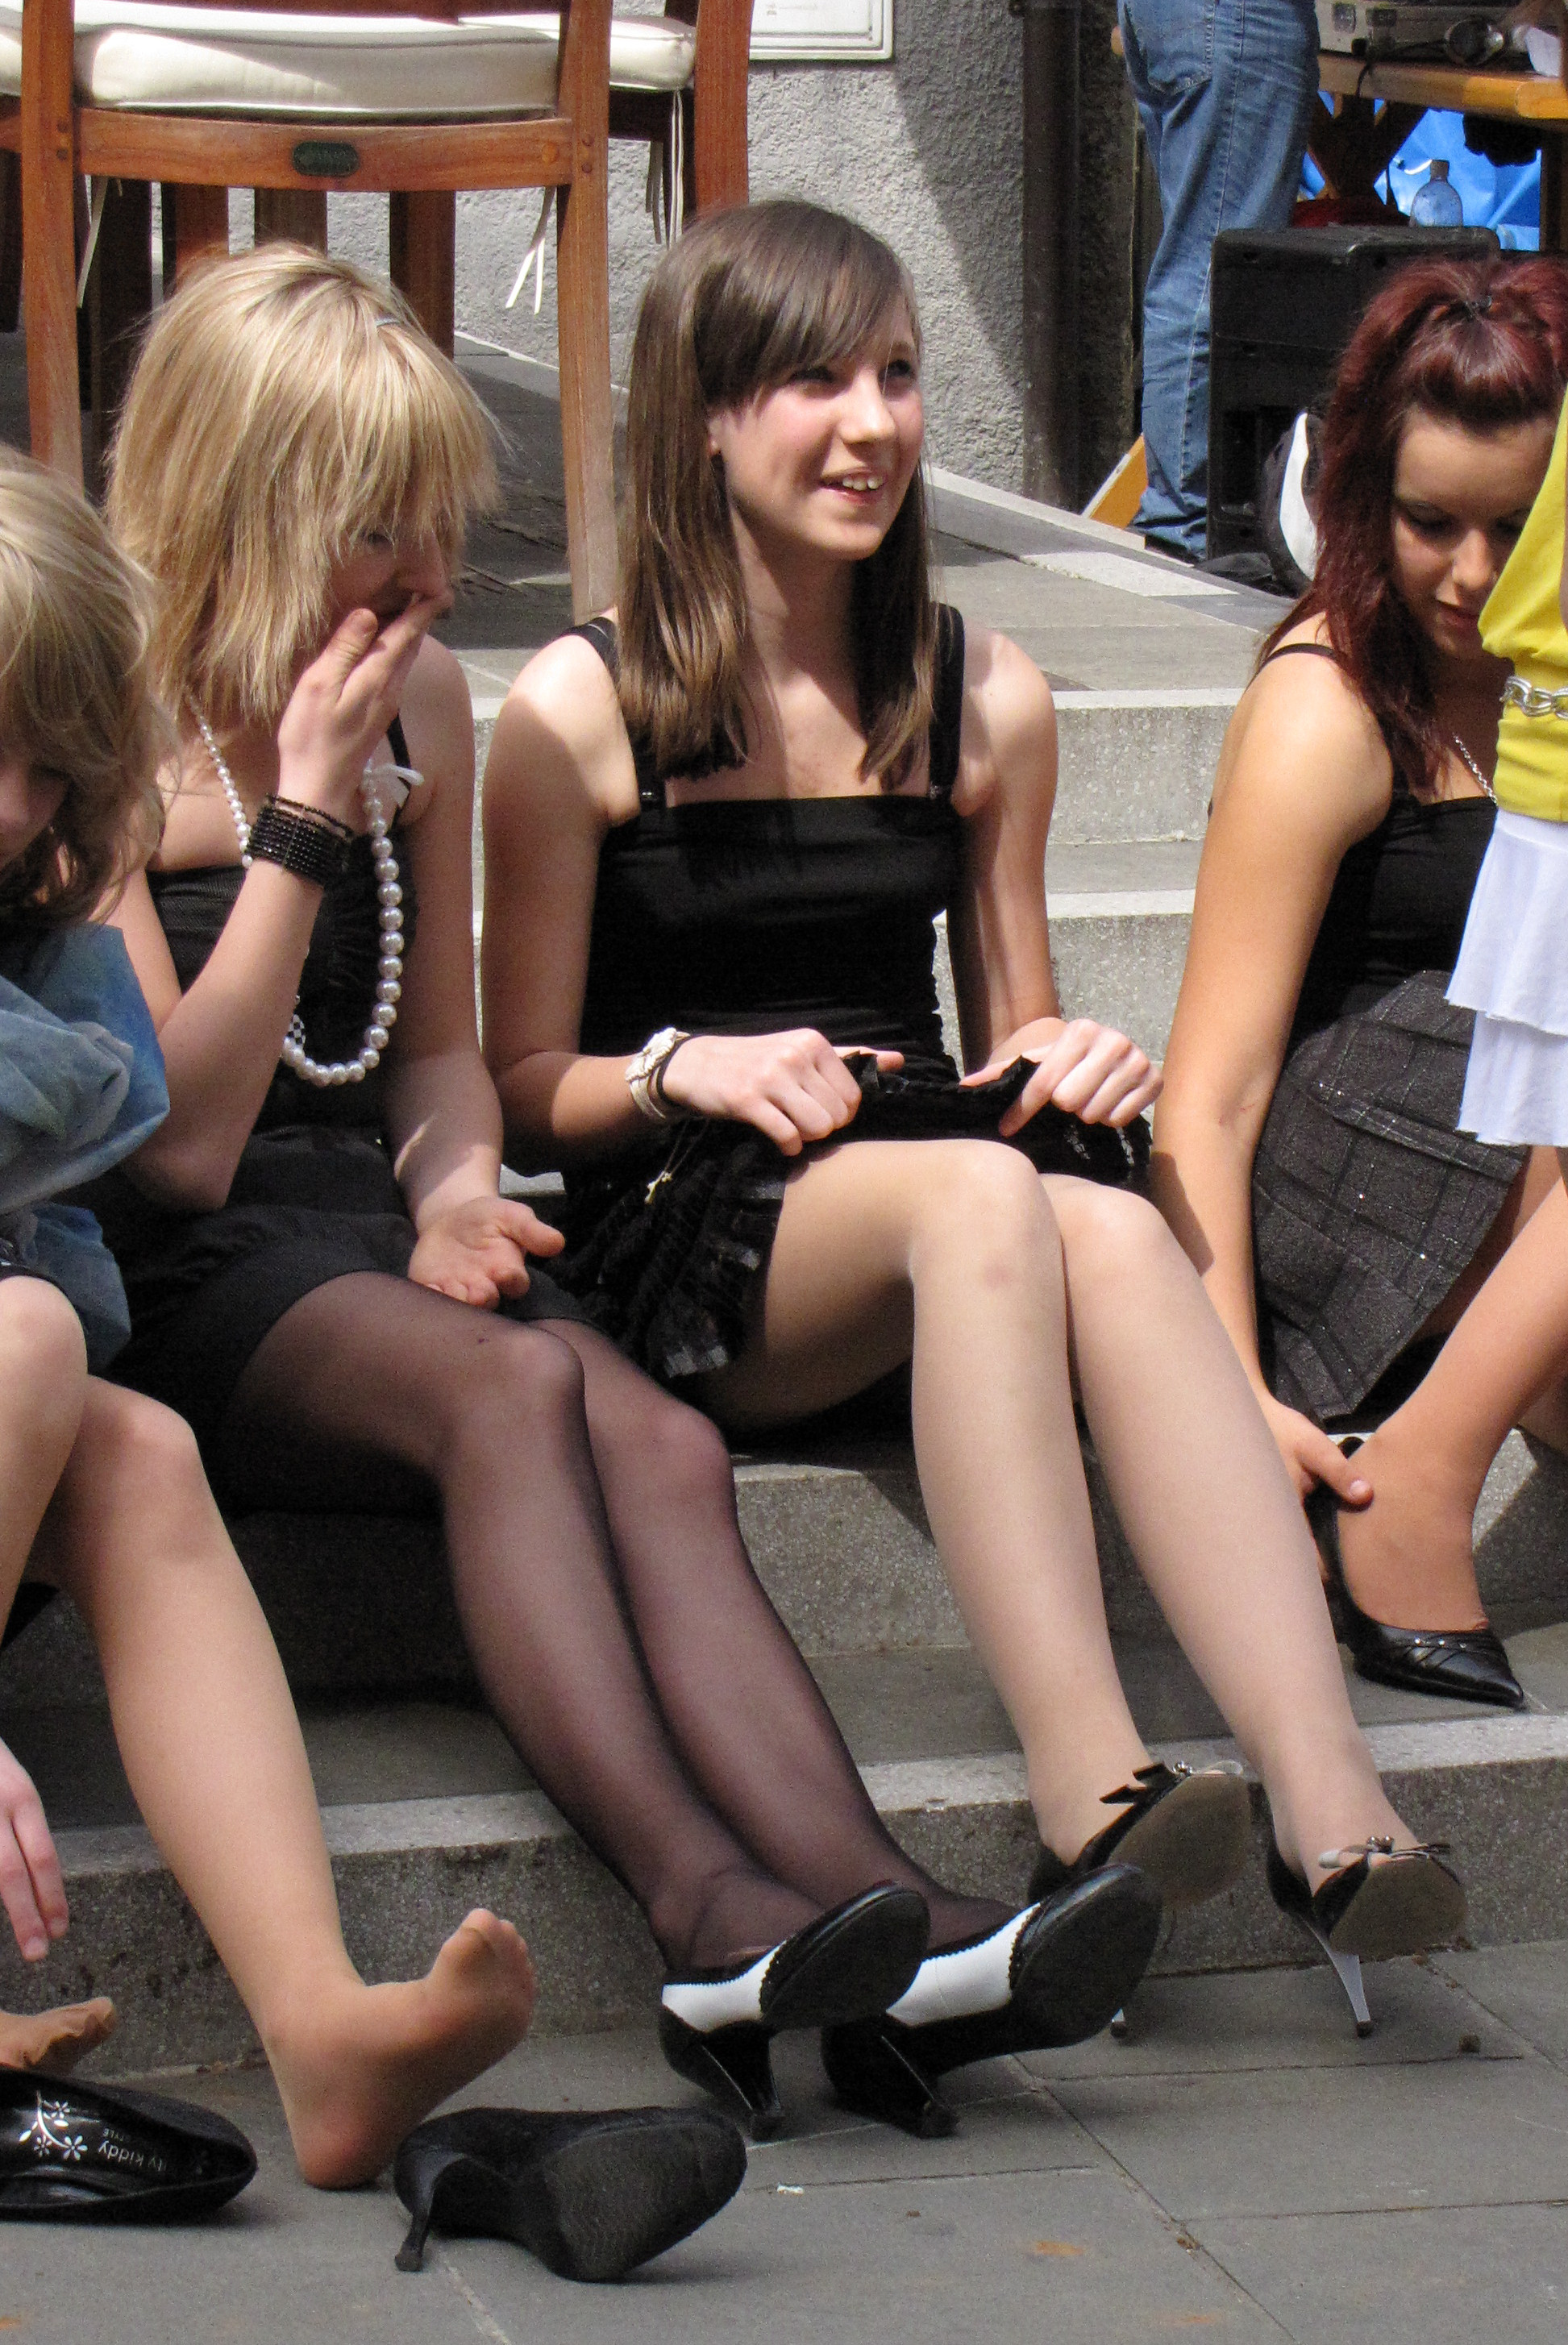 more lovely pantyhosed girls